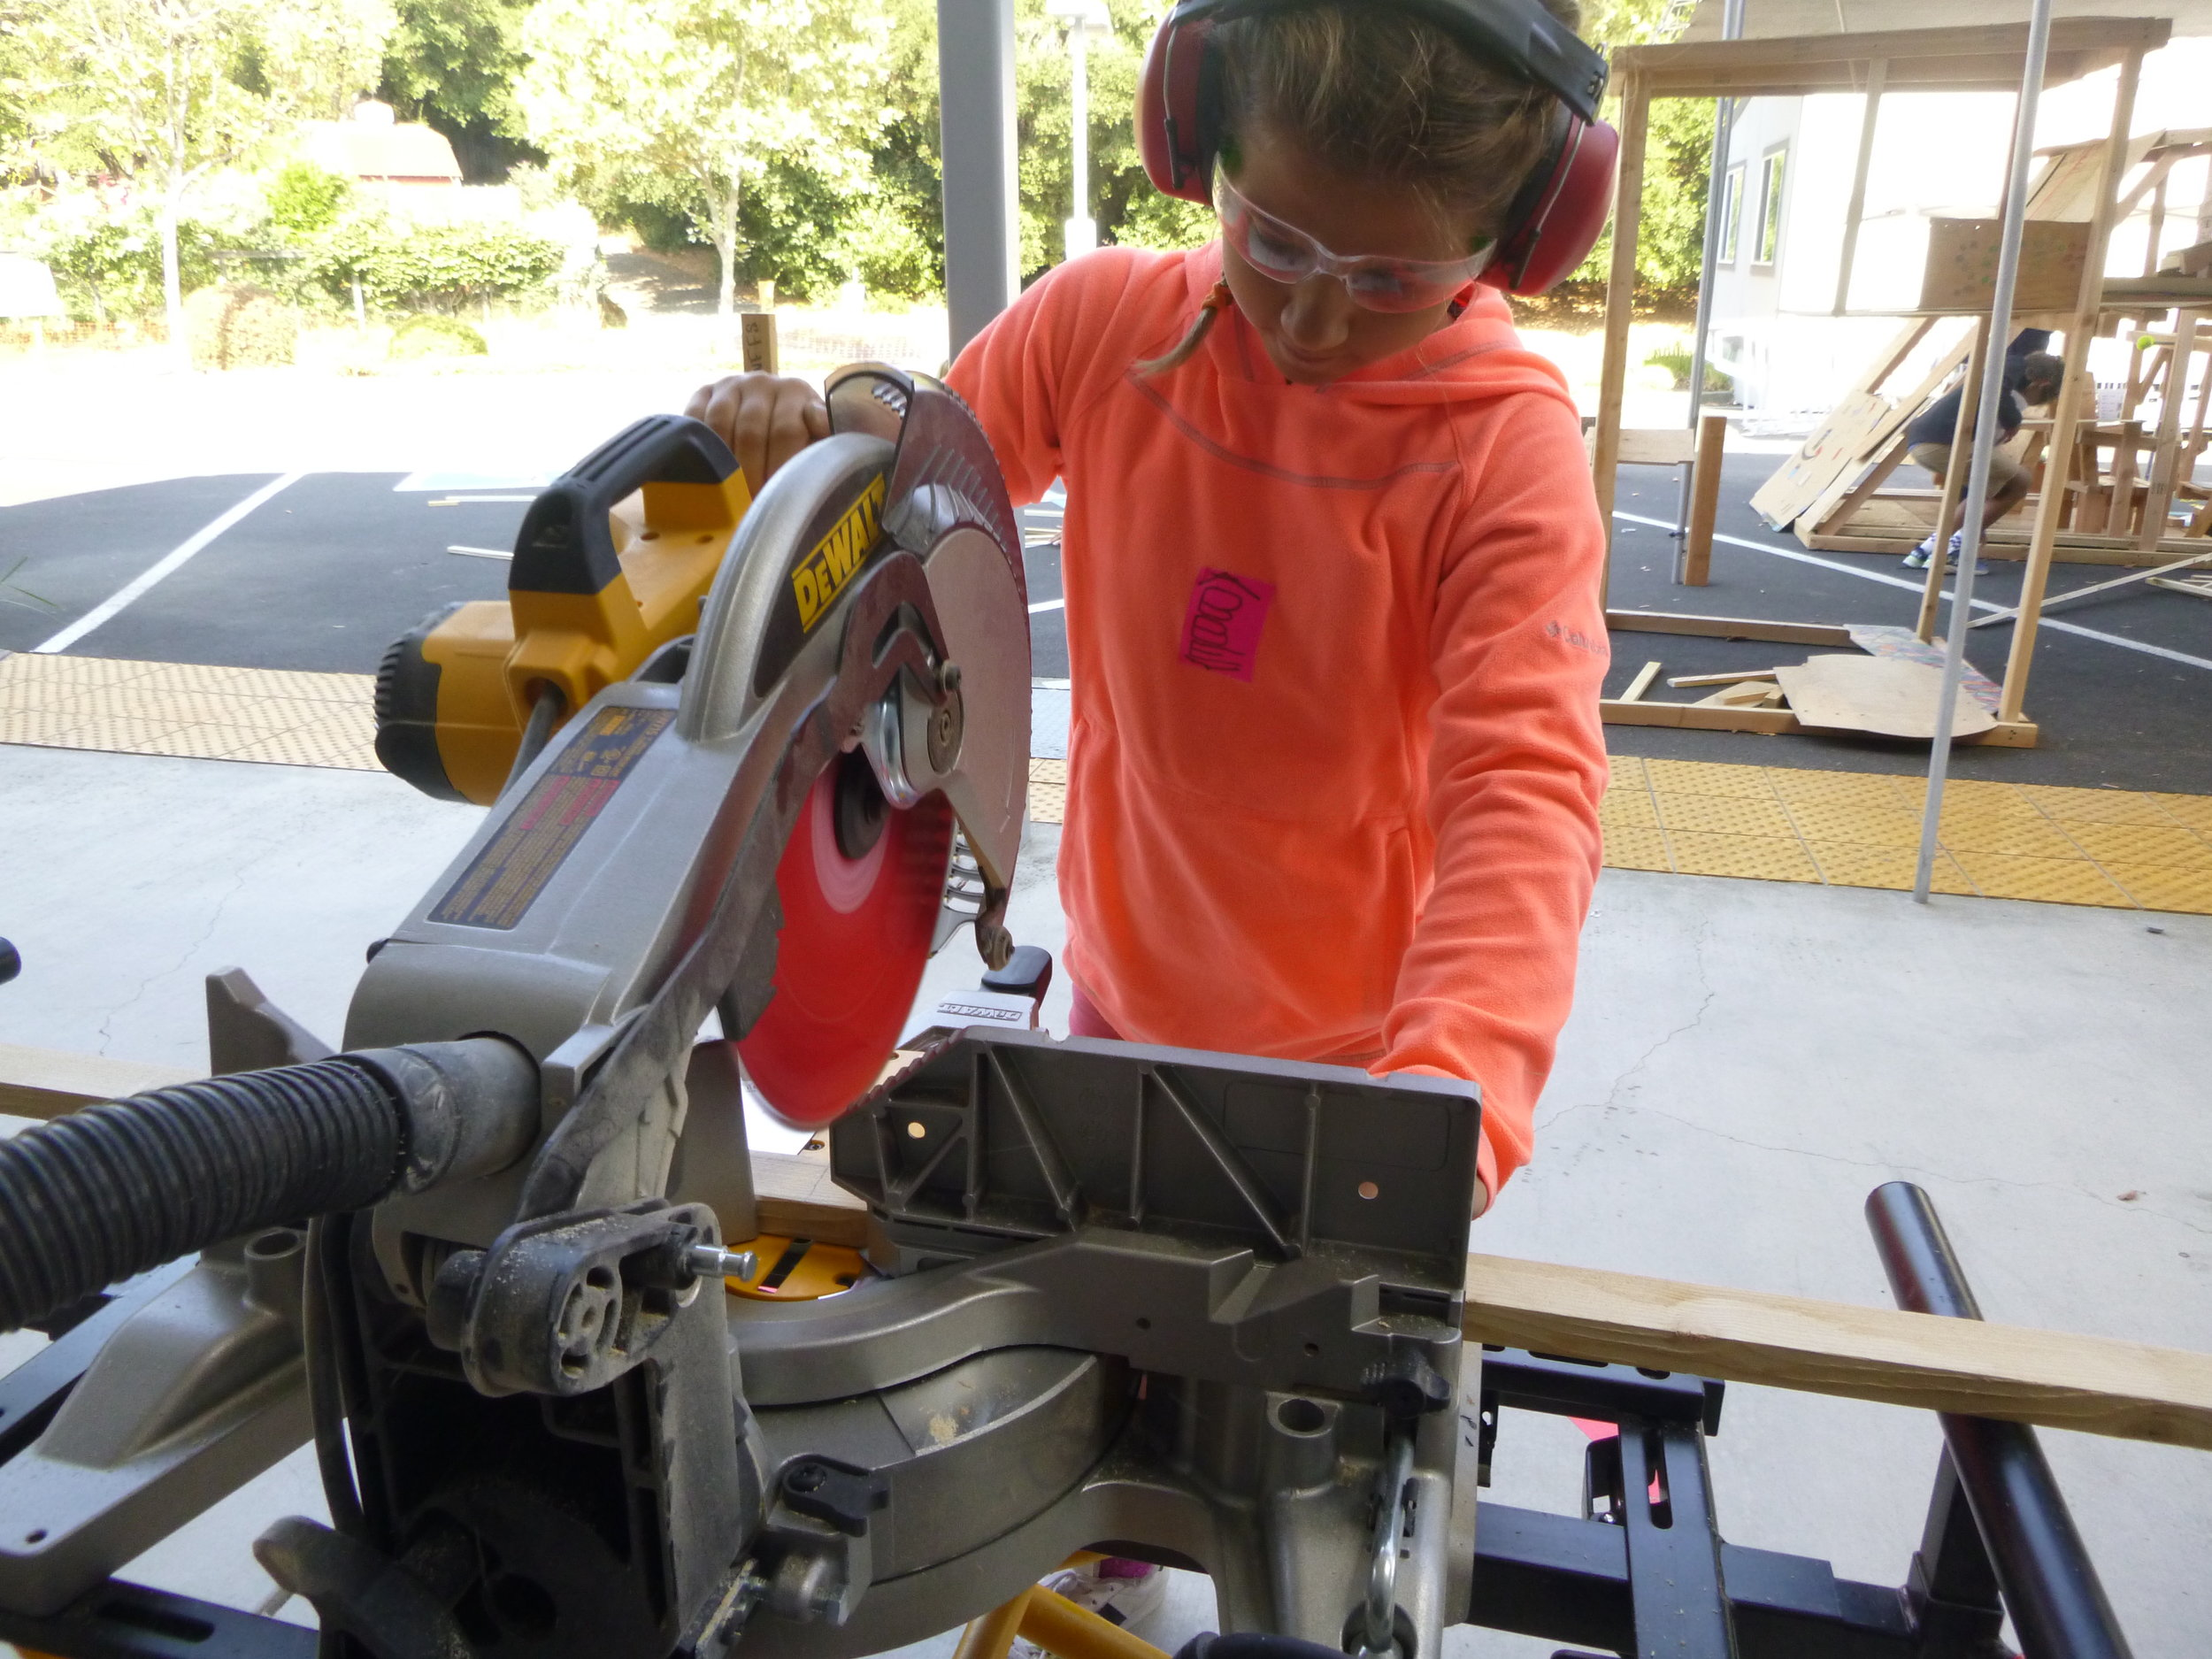 Abbey sawing away. The kids got a LOT of practice this week - we used a ton of wood!